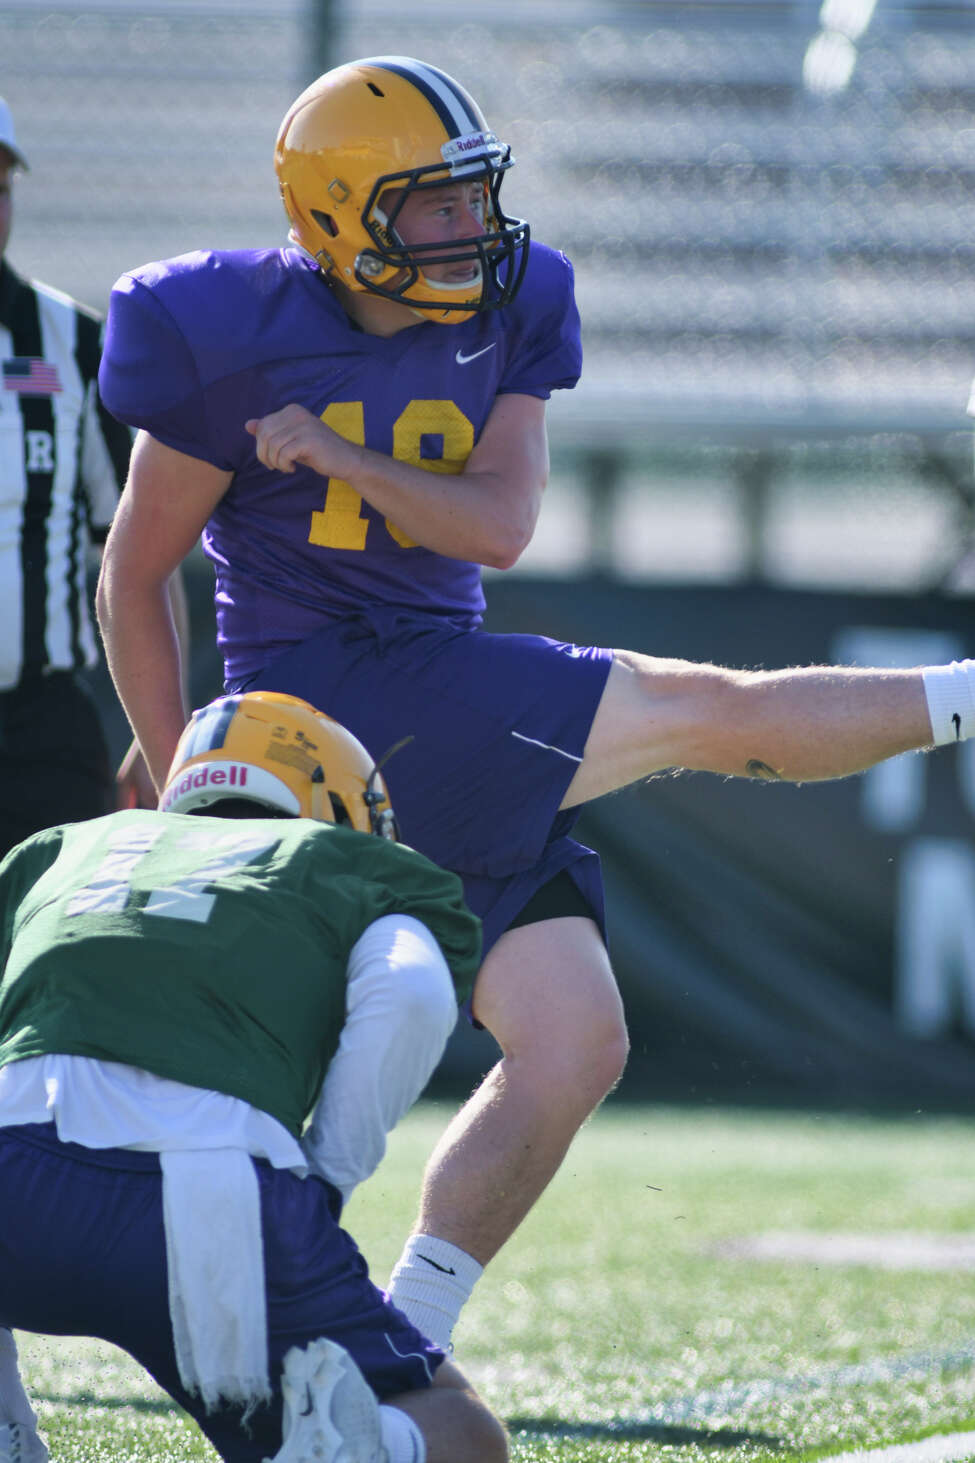 UAlbany football kicker Dylan Burns watches his kick go through the goal posts during practice on Tuesday, Aug. 20, 2019, in Albany, N.Y. (Paul Buckowski/Times Union)